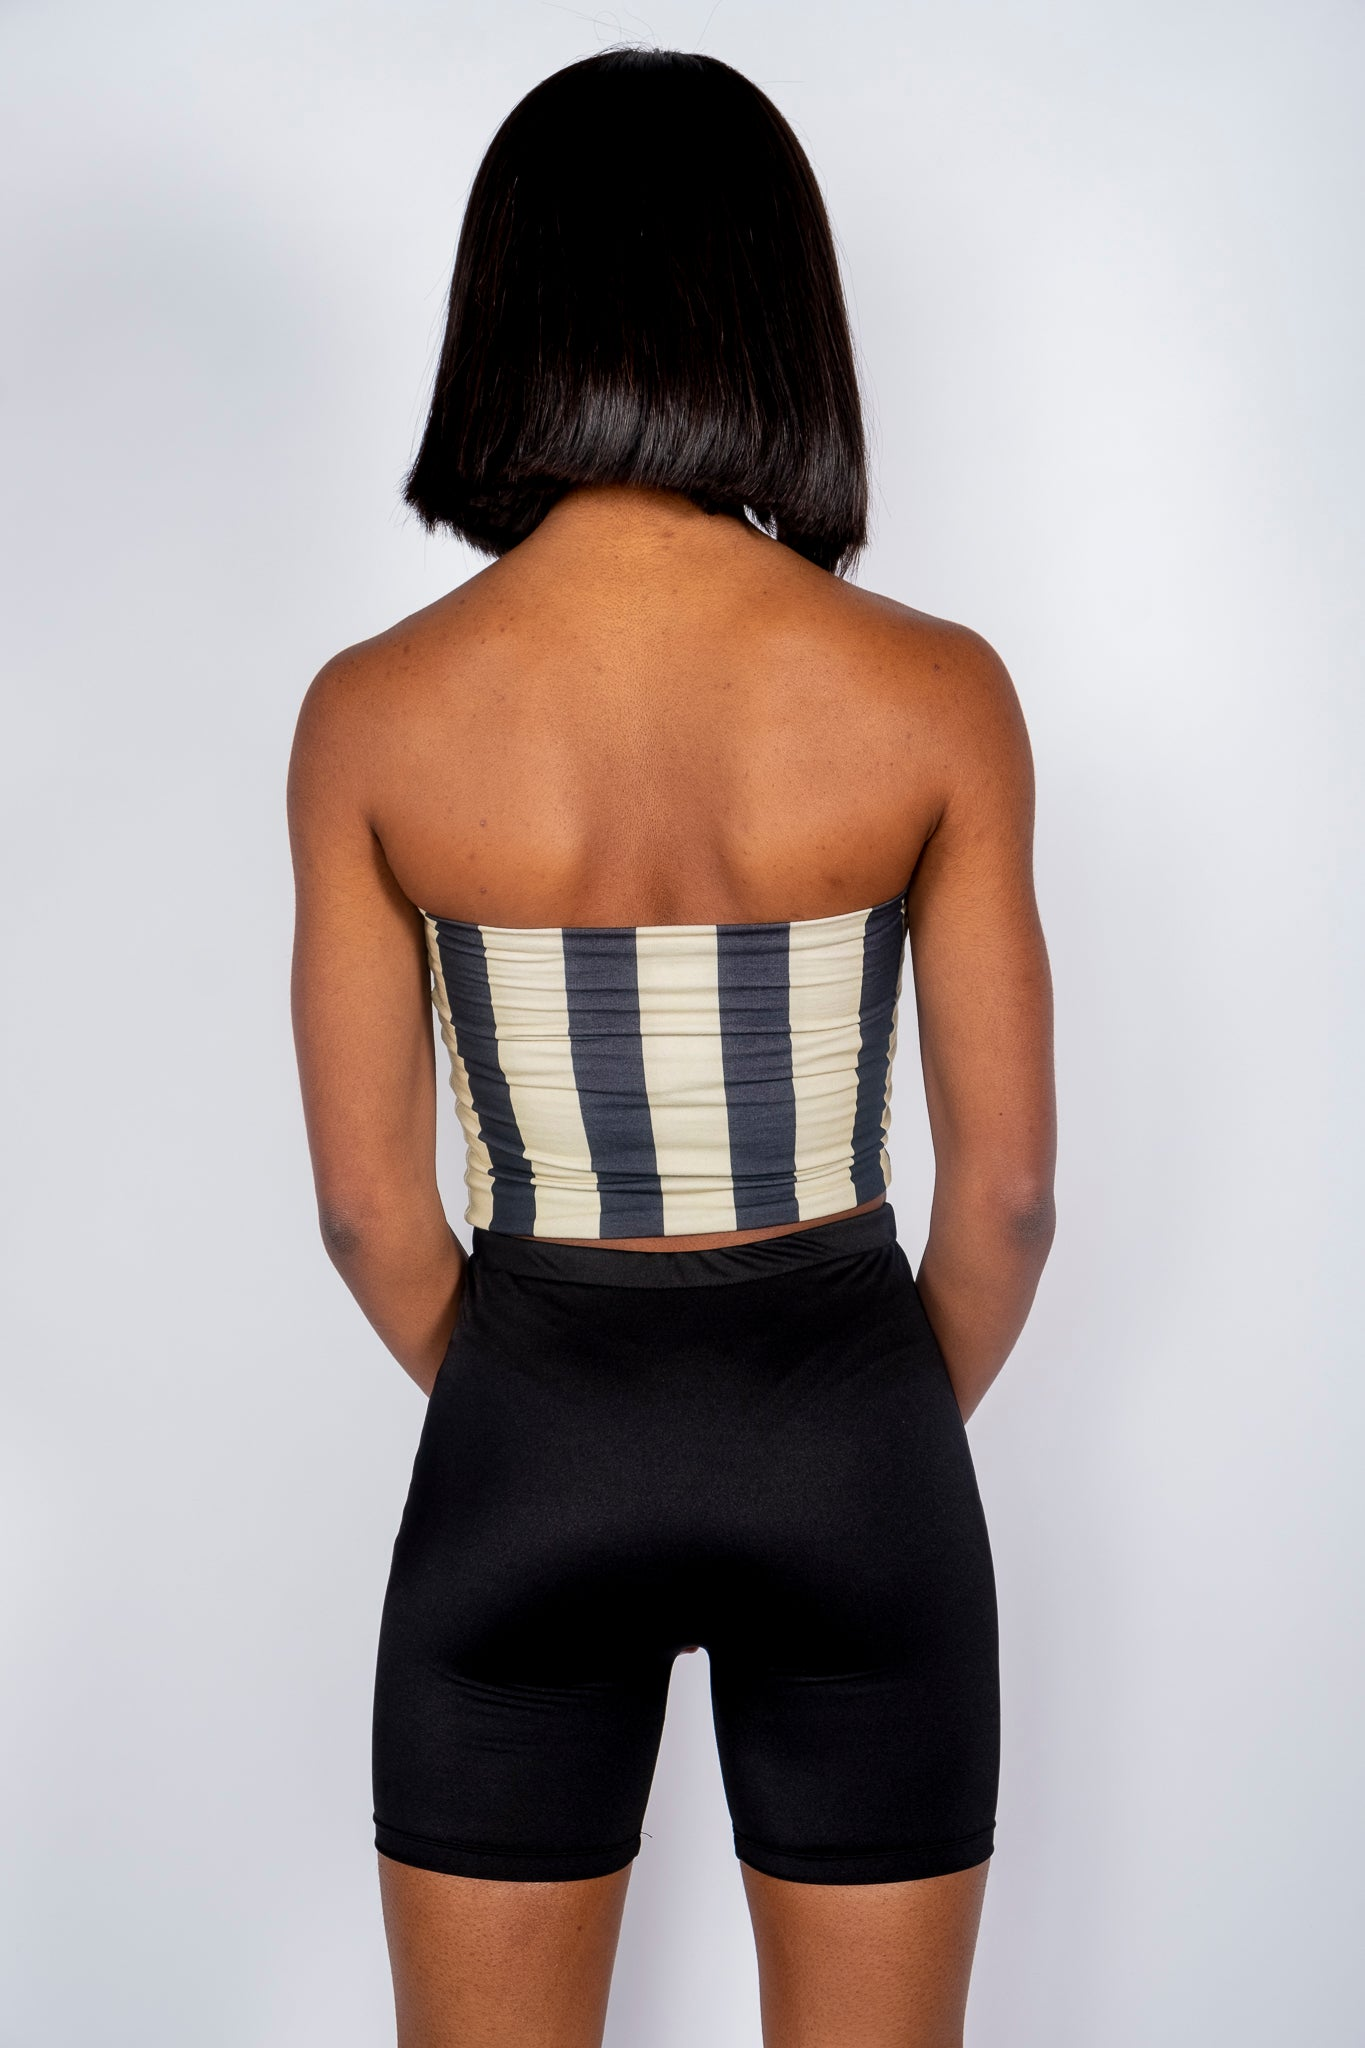 Black and Tan Gold Striped Tube Top - Hype and Vice